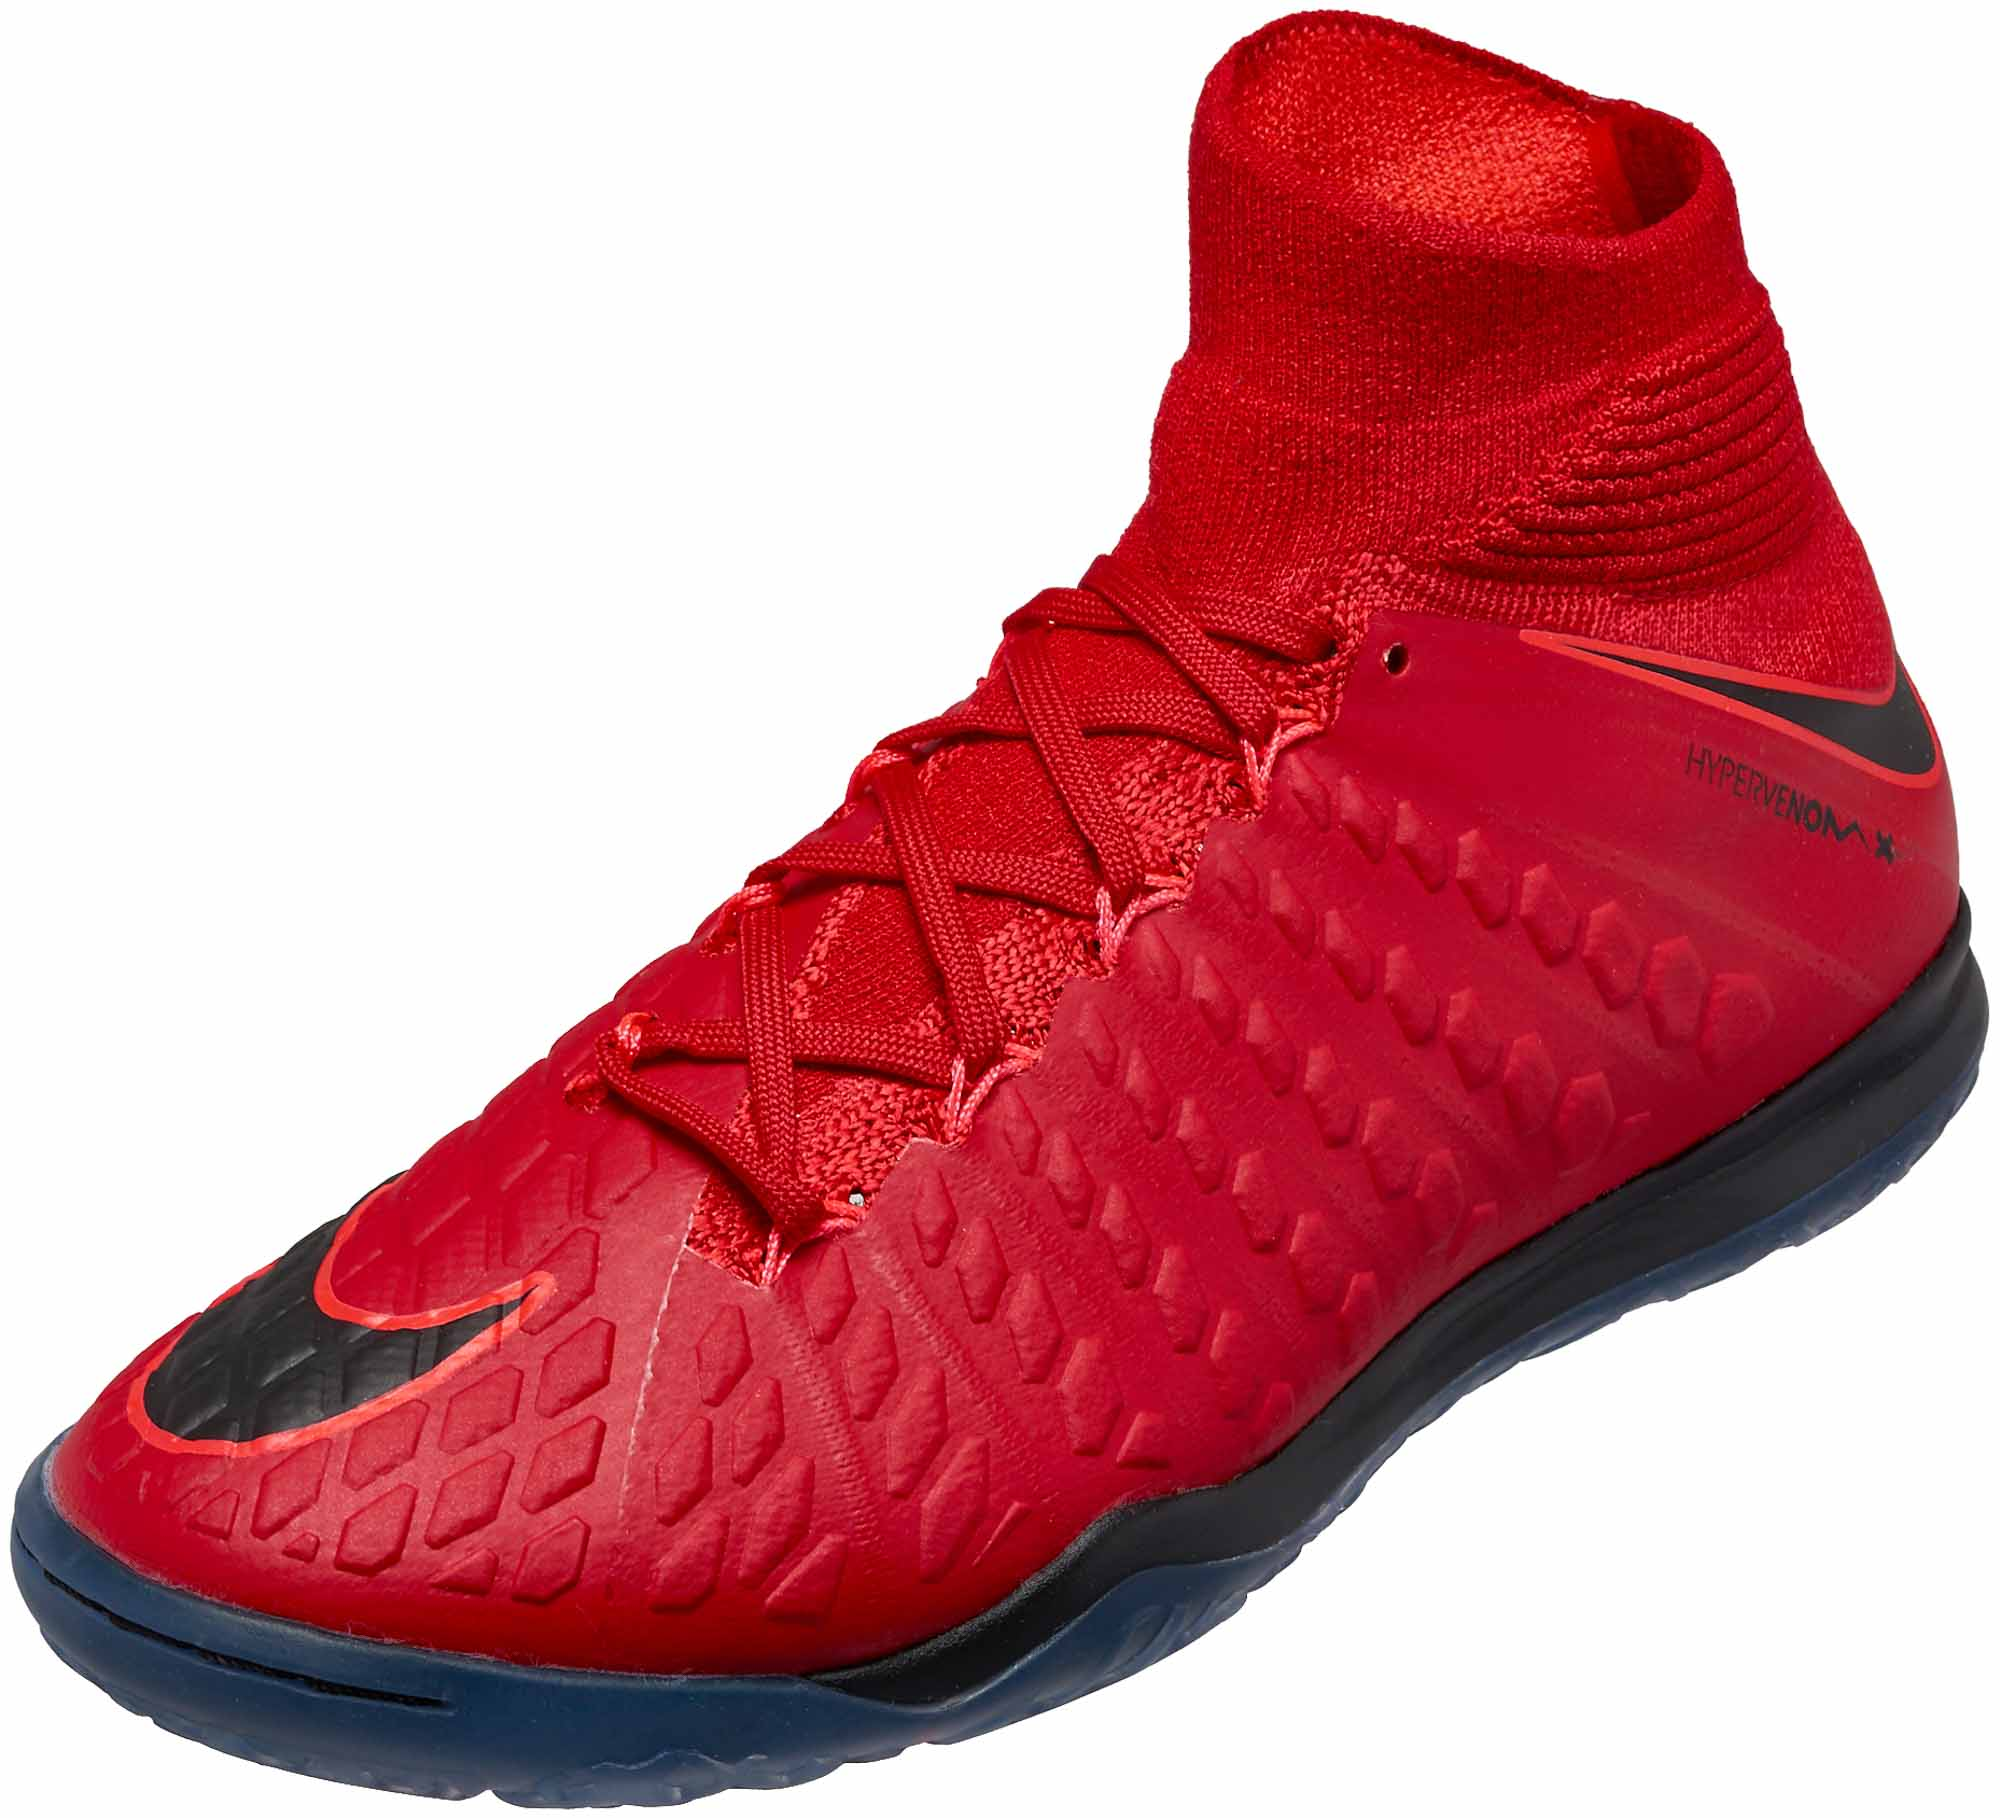 Nike Youth Hypervenomx Proximo Indoor Soccer Shoes